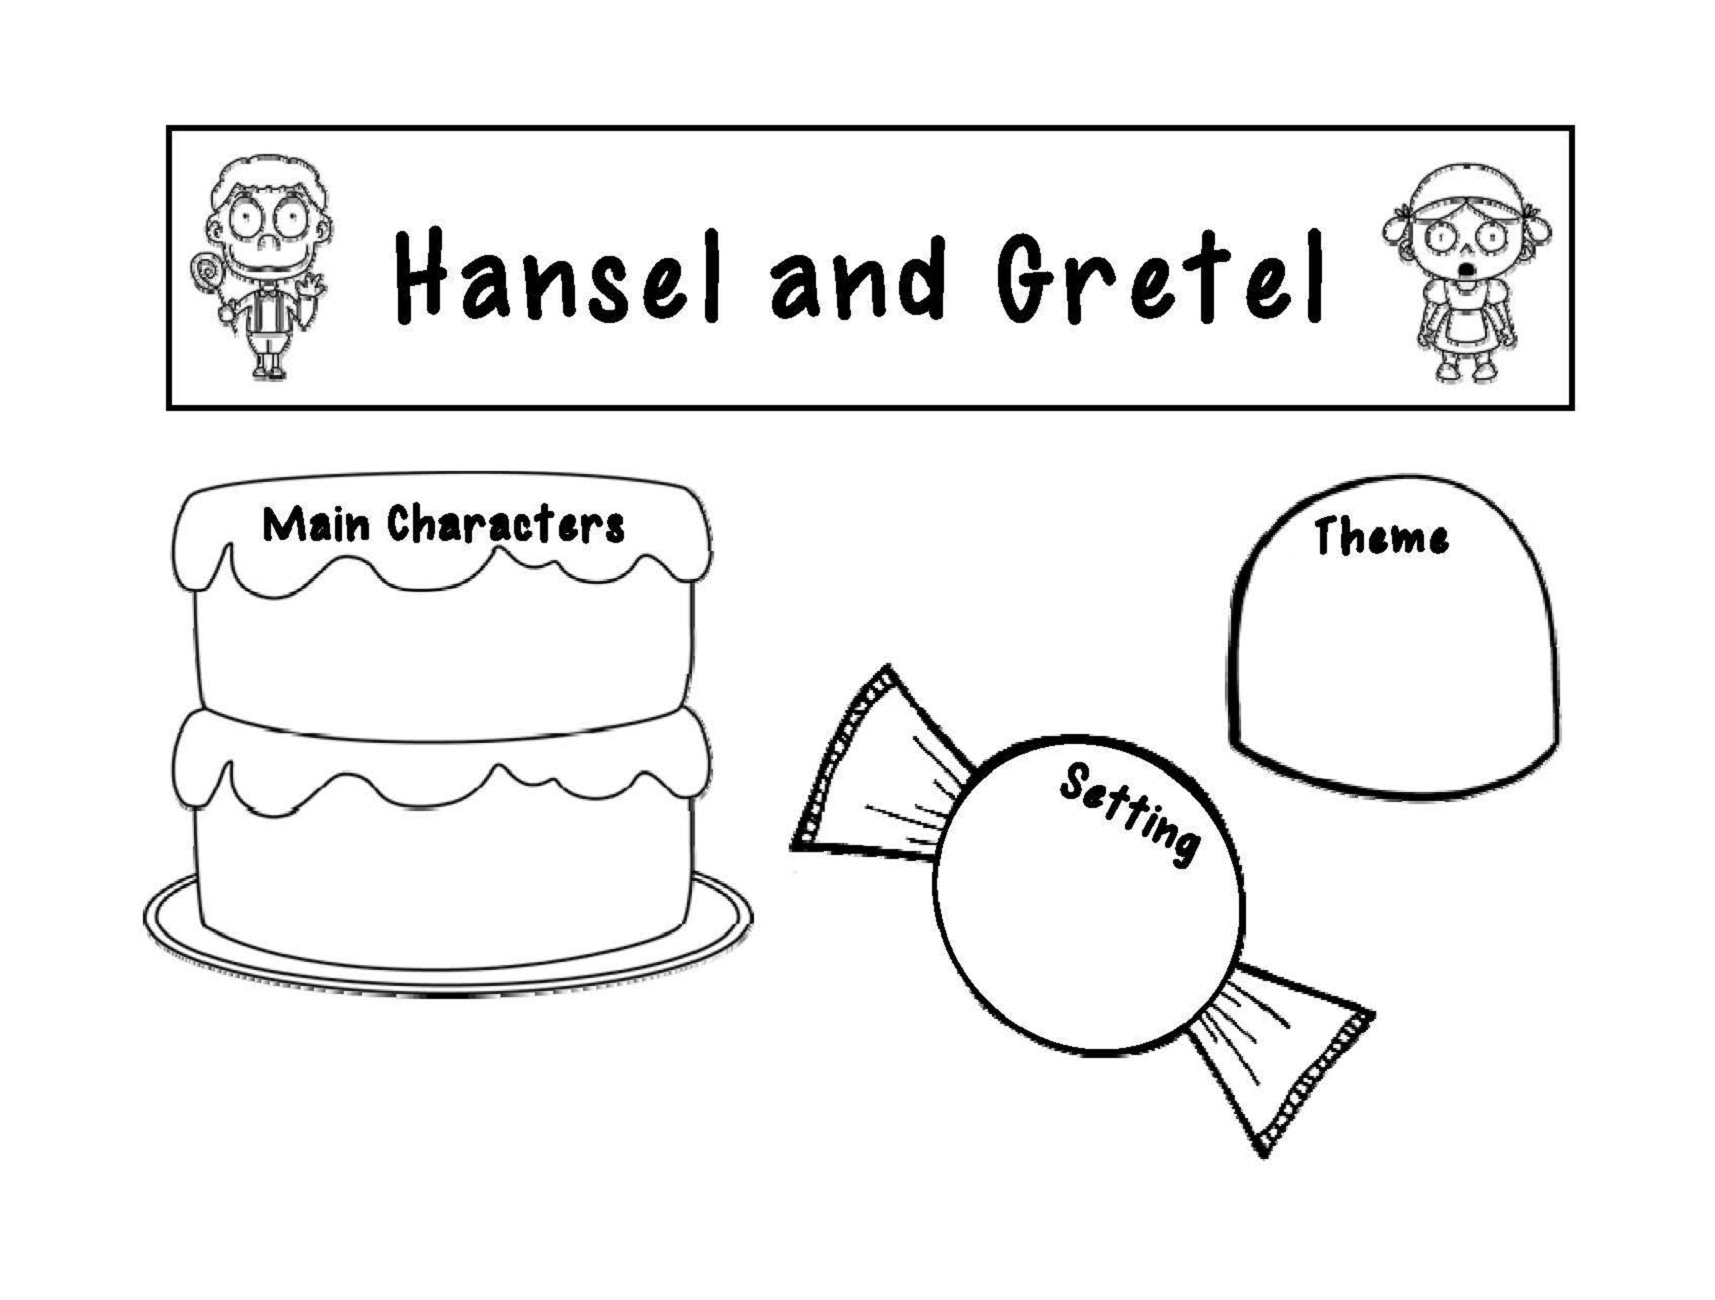 hansel-and-gretel-activities-teaching